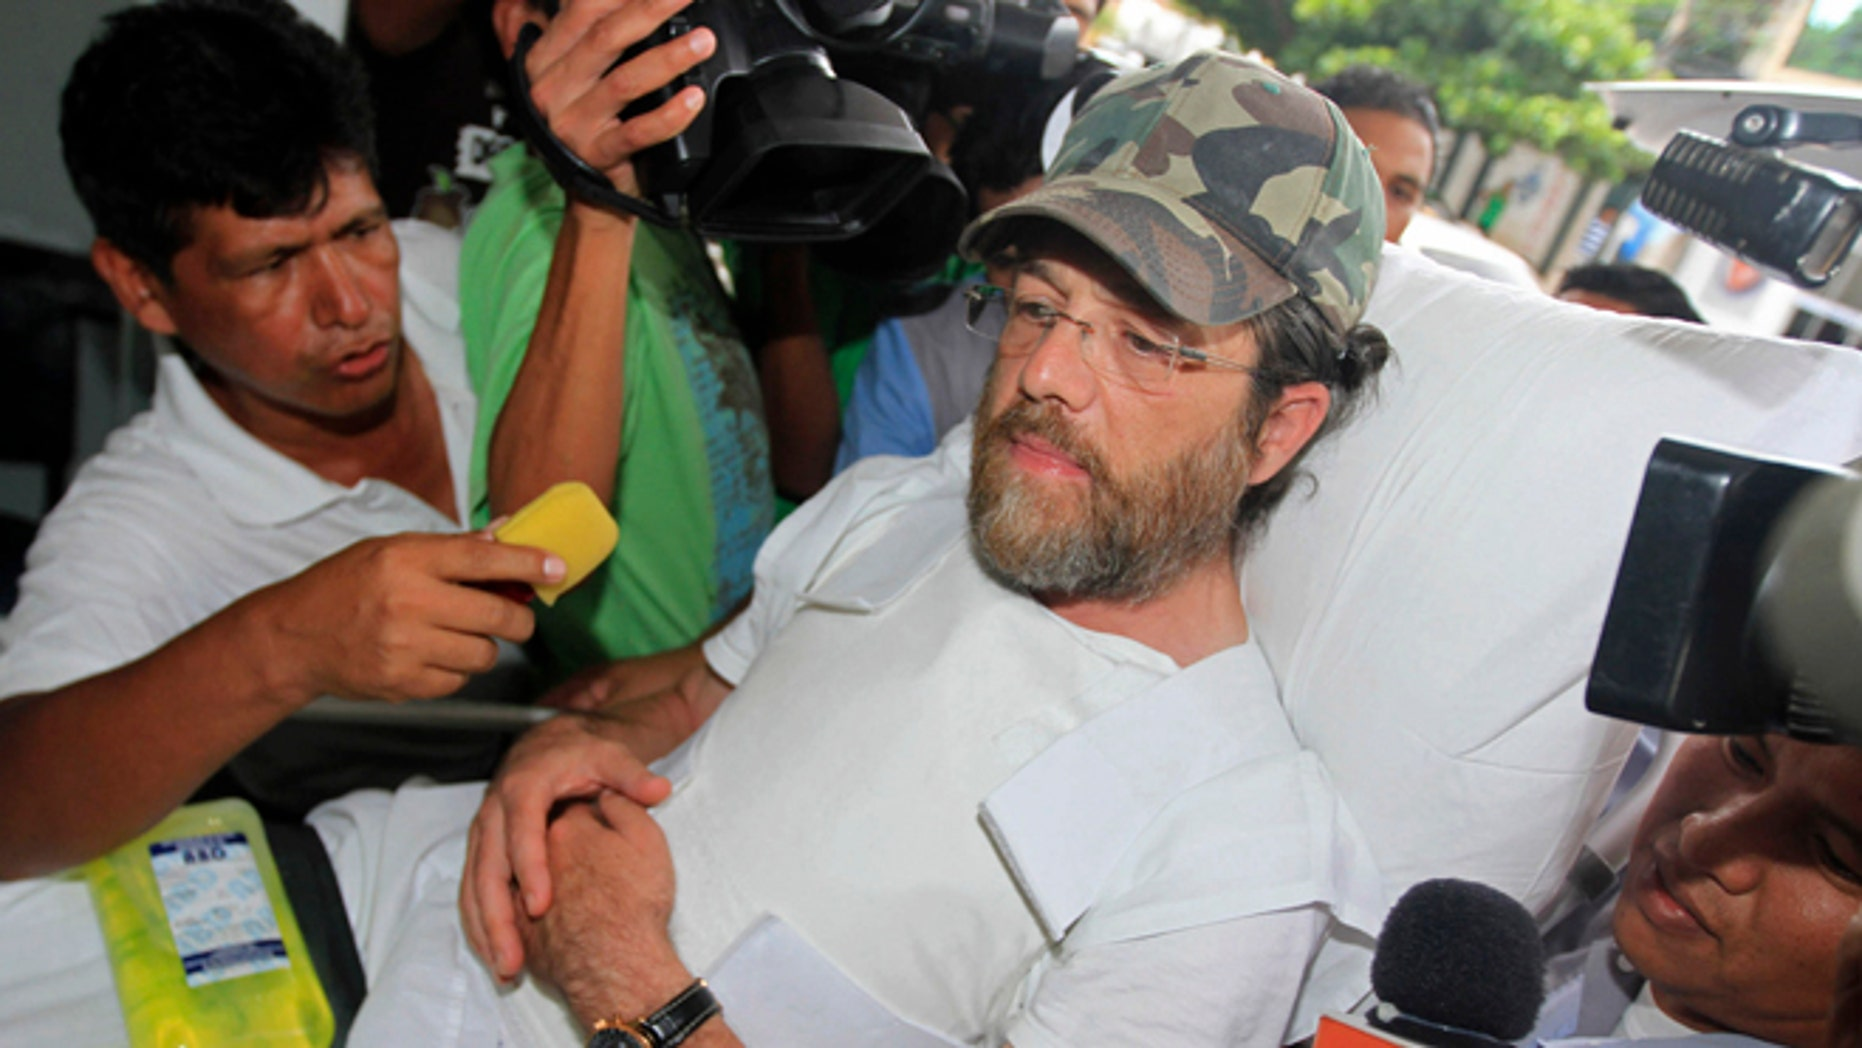 Members of the press surround U.S. businessman Jacob Ostreicher as he arrives in a hospital bed wearing a flak jacket to his court hearing in Santa Cruz, Bolivia, Tuesday, Dec. 11, 2012. A Bolivian appeals panel has refused to immediately release Ostreicher, despite evidence he was fleeced and extorted by prosecutors who have had him jailed for 18 months without charges on suspicion of money laundering. Ostreicher has been hospitalized for more than two weeks in a private clinic after being diagnosed with Parkinsons. (AP Photo)